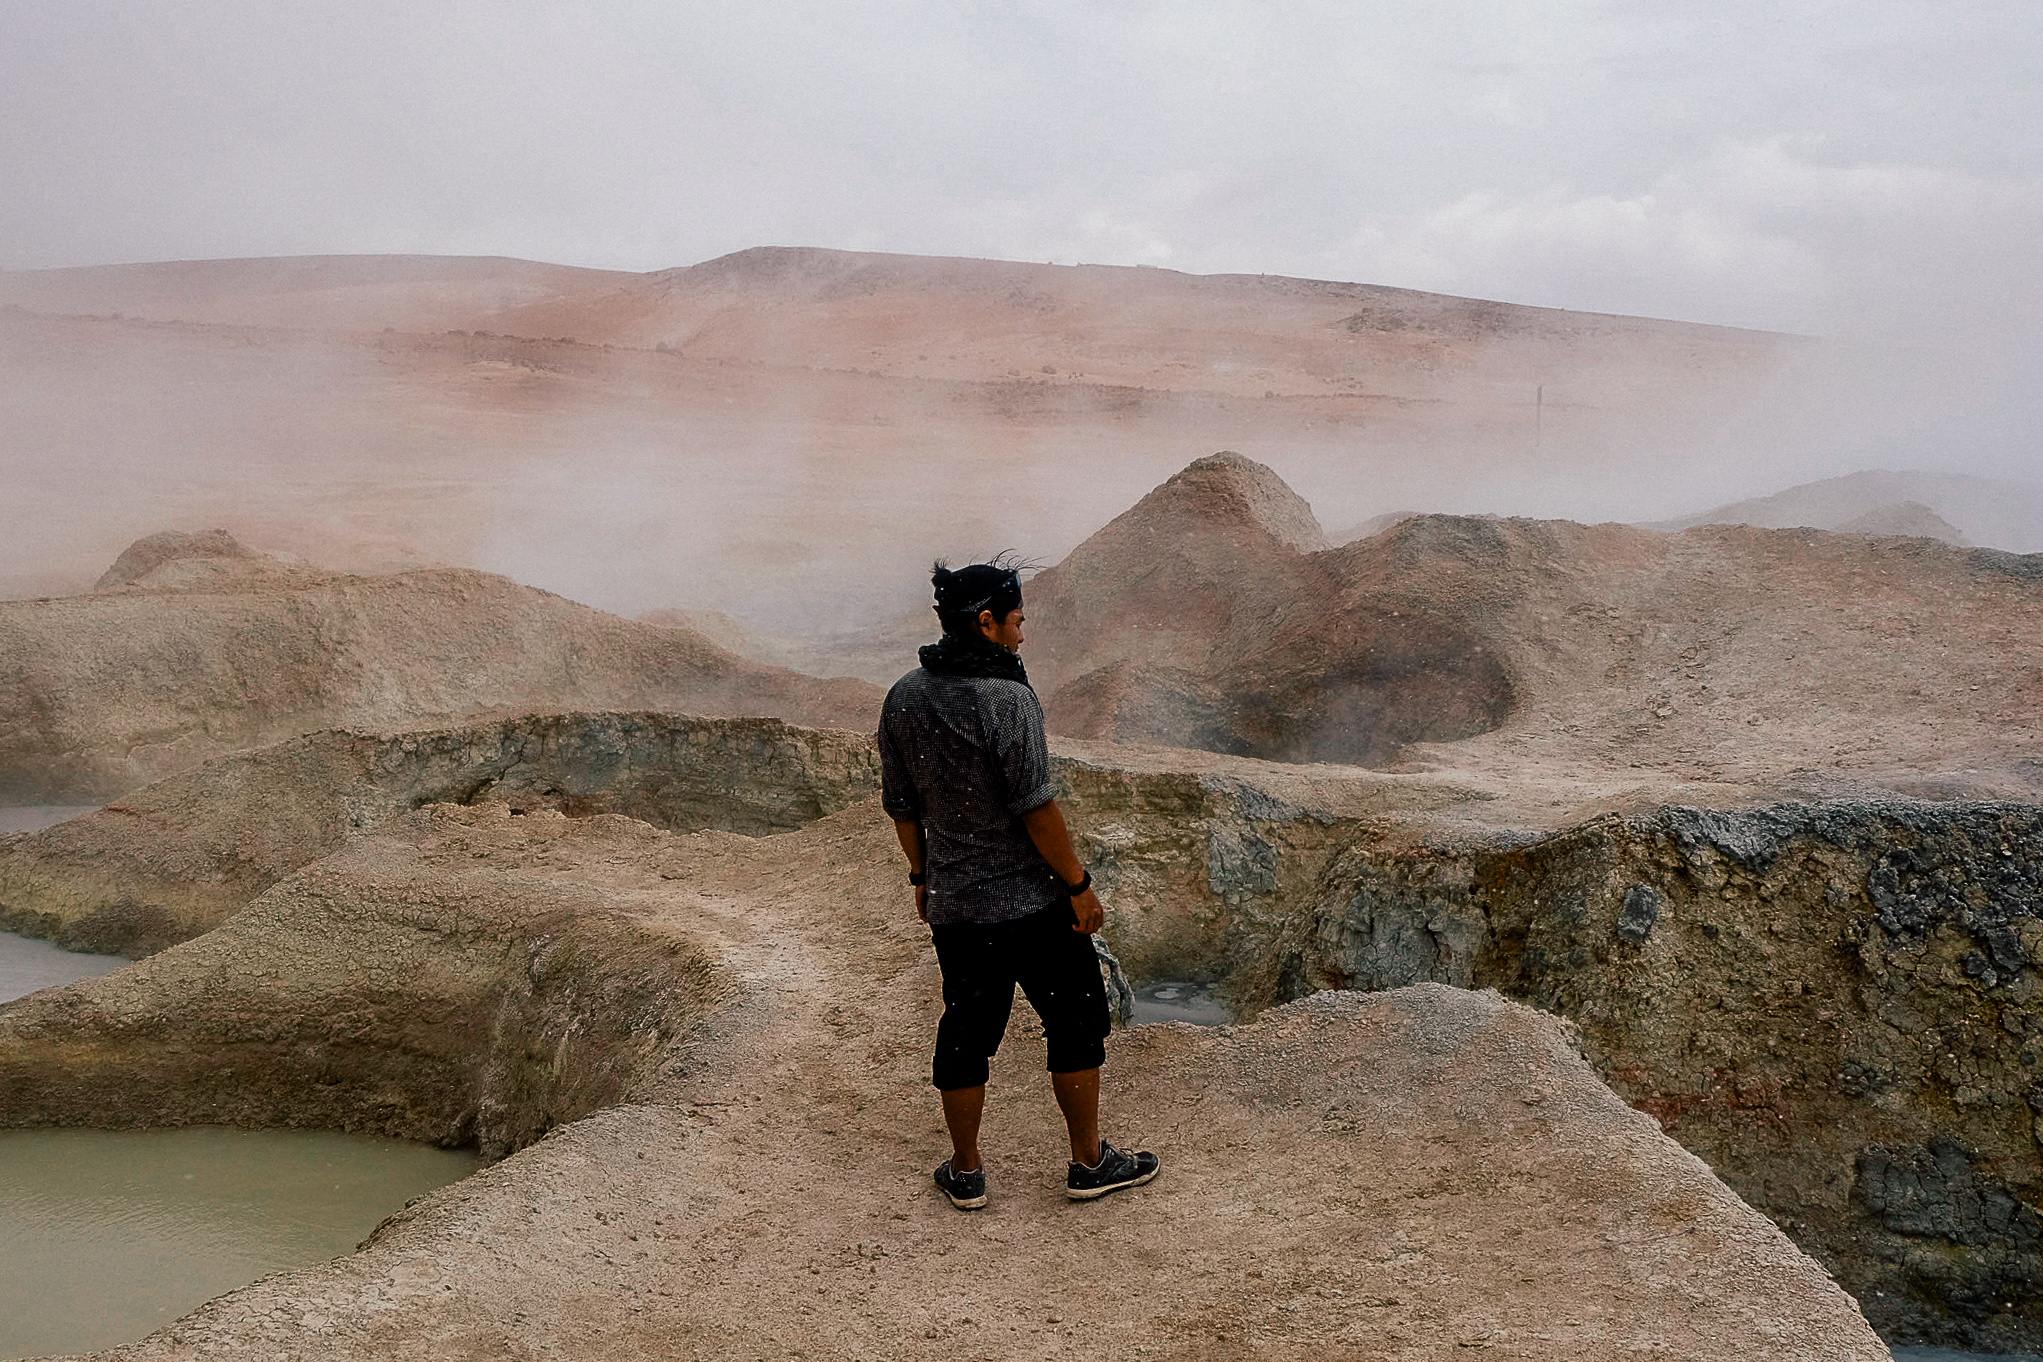 As we arrived at the geyser the weather changed and it started snowing suddenly. It was amazing because it was so unexpected, it was sunny and hot minutes before arriving at the geysers!